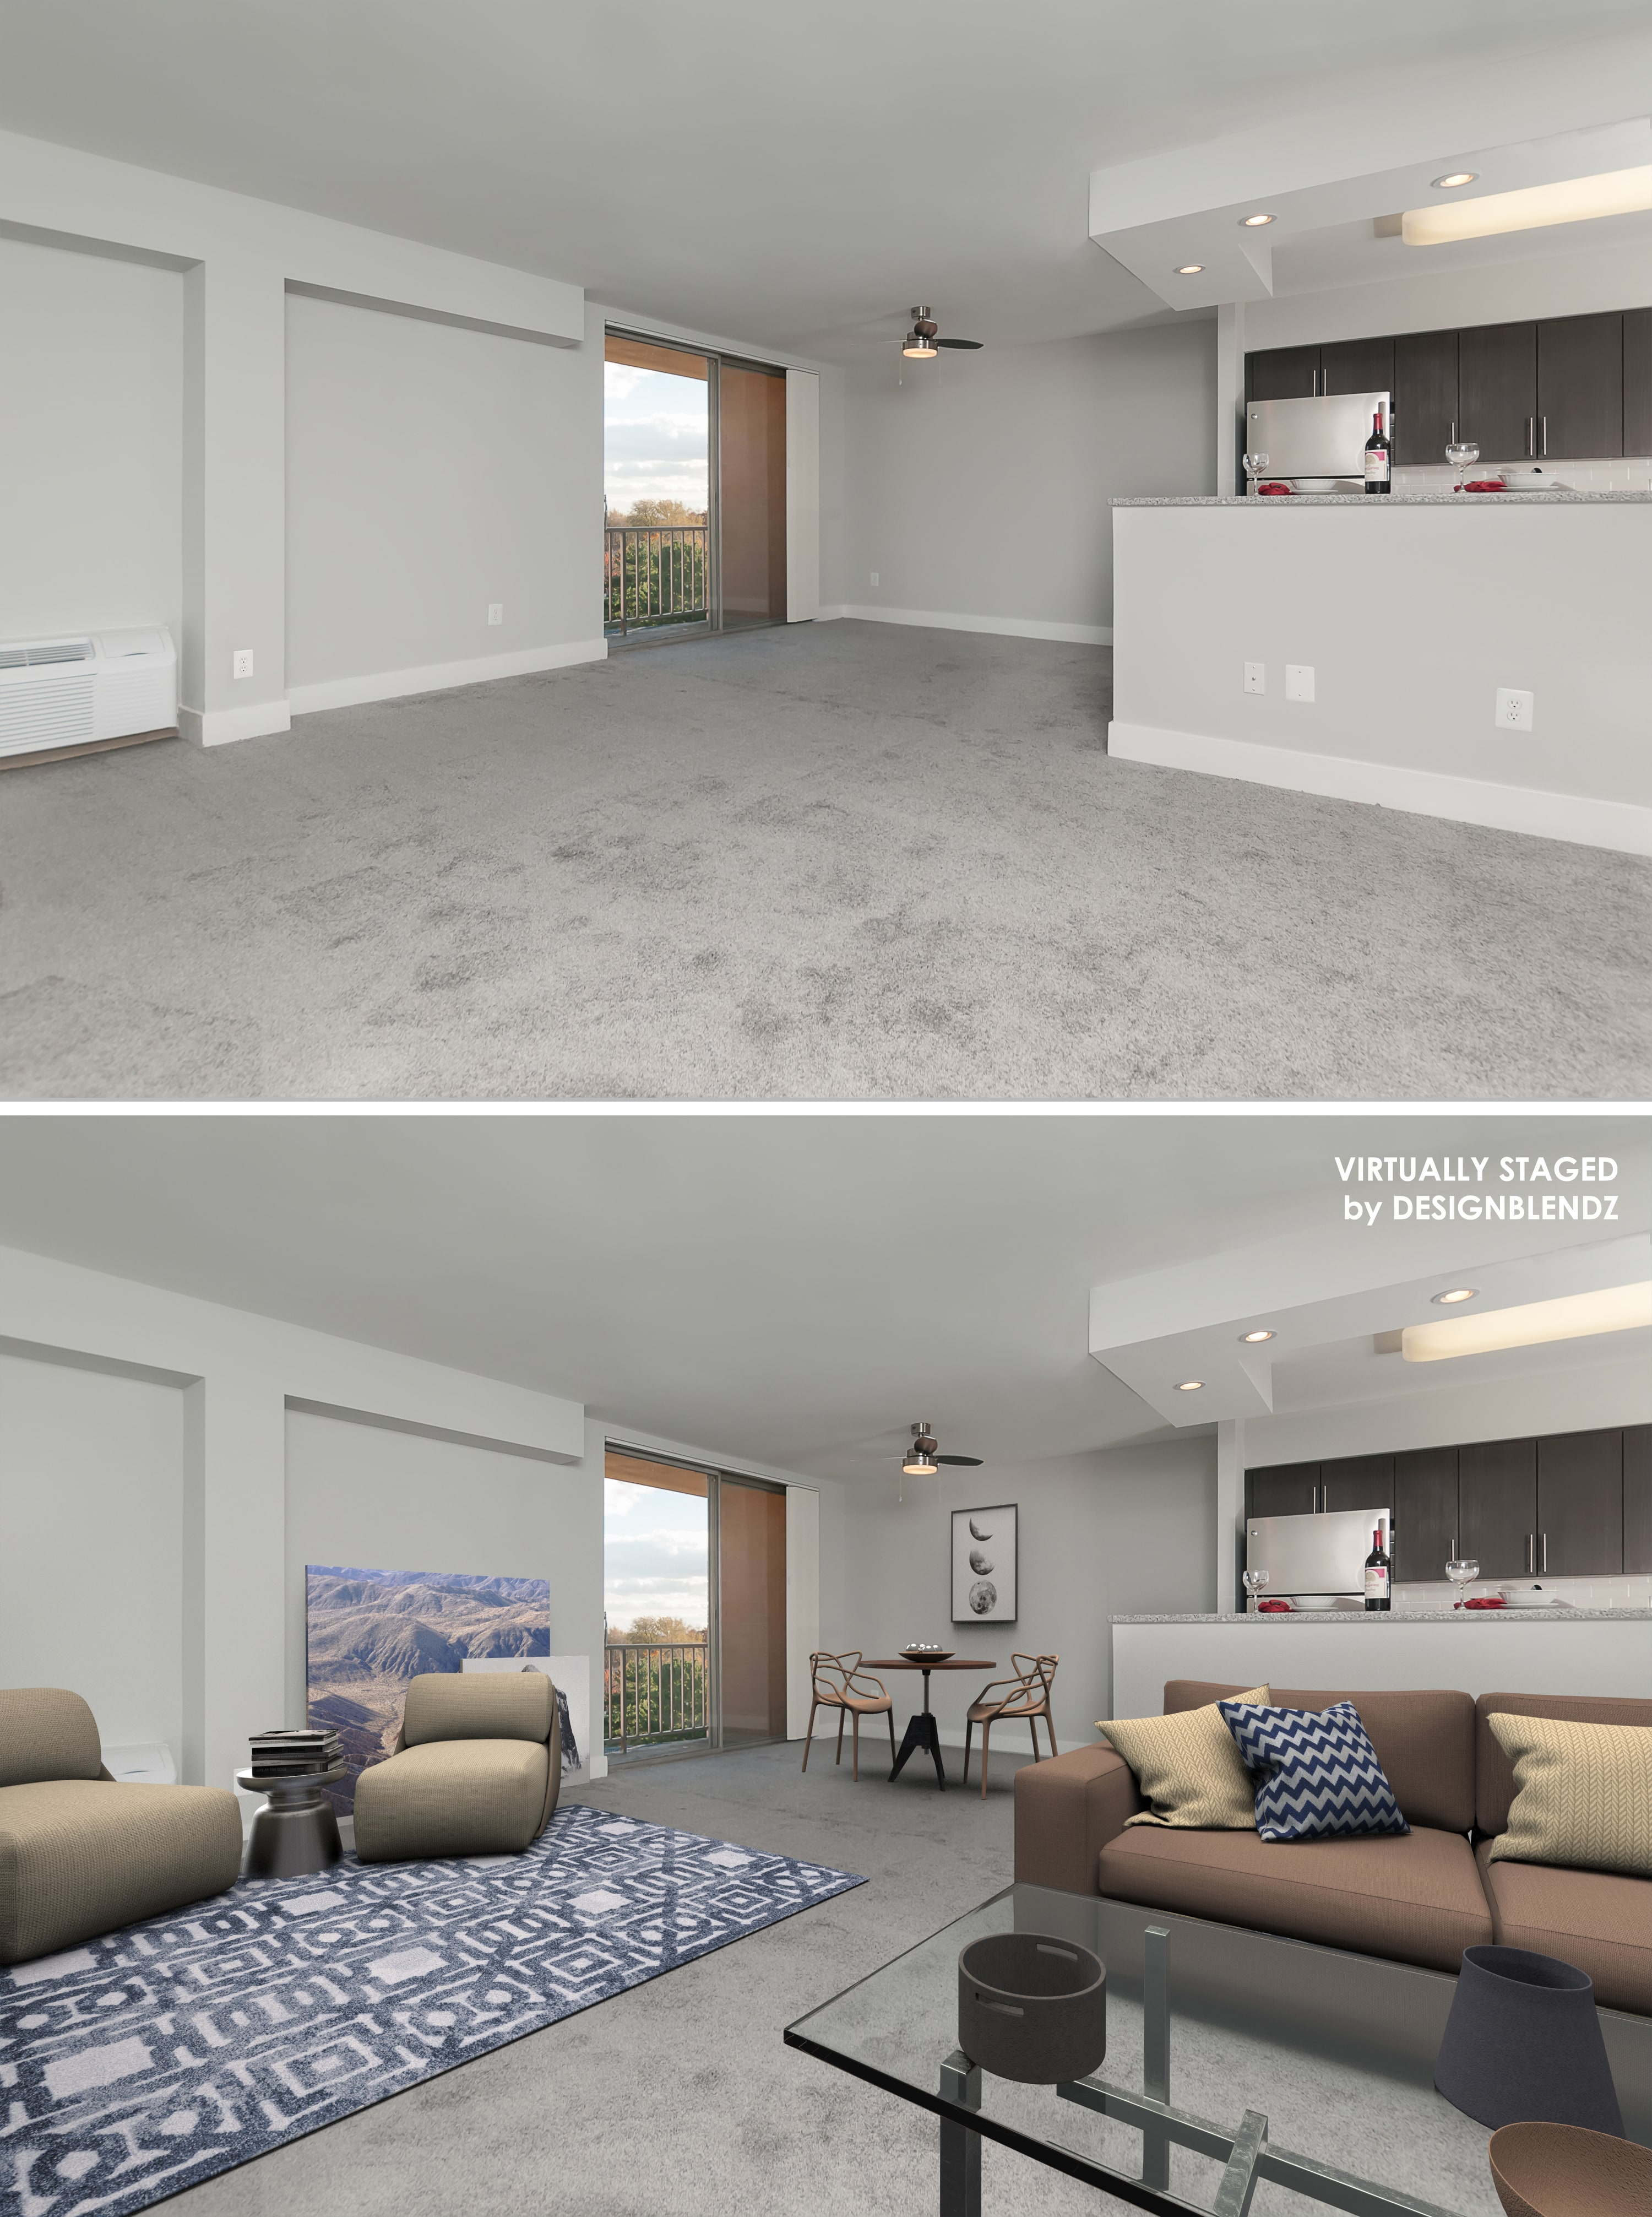 Family room example of virtual staging